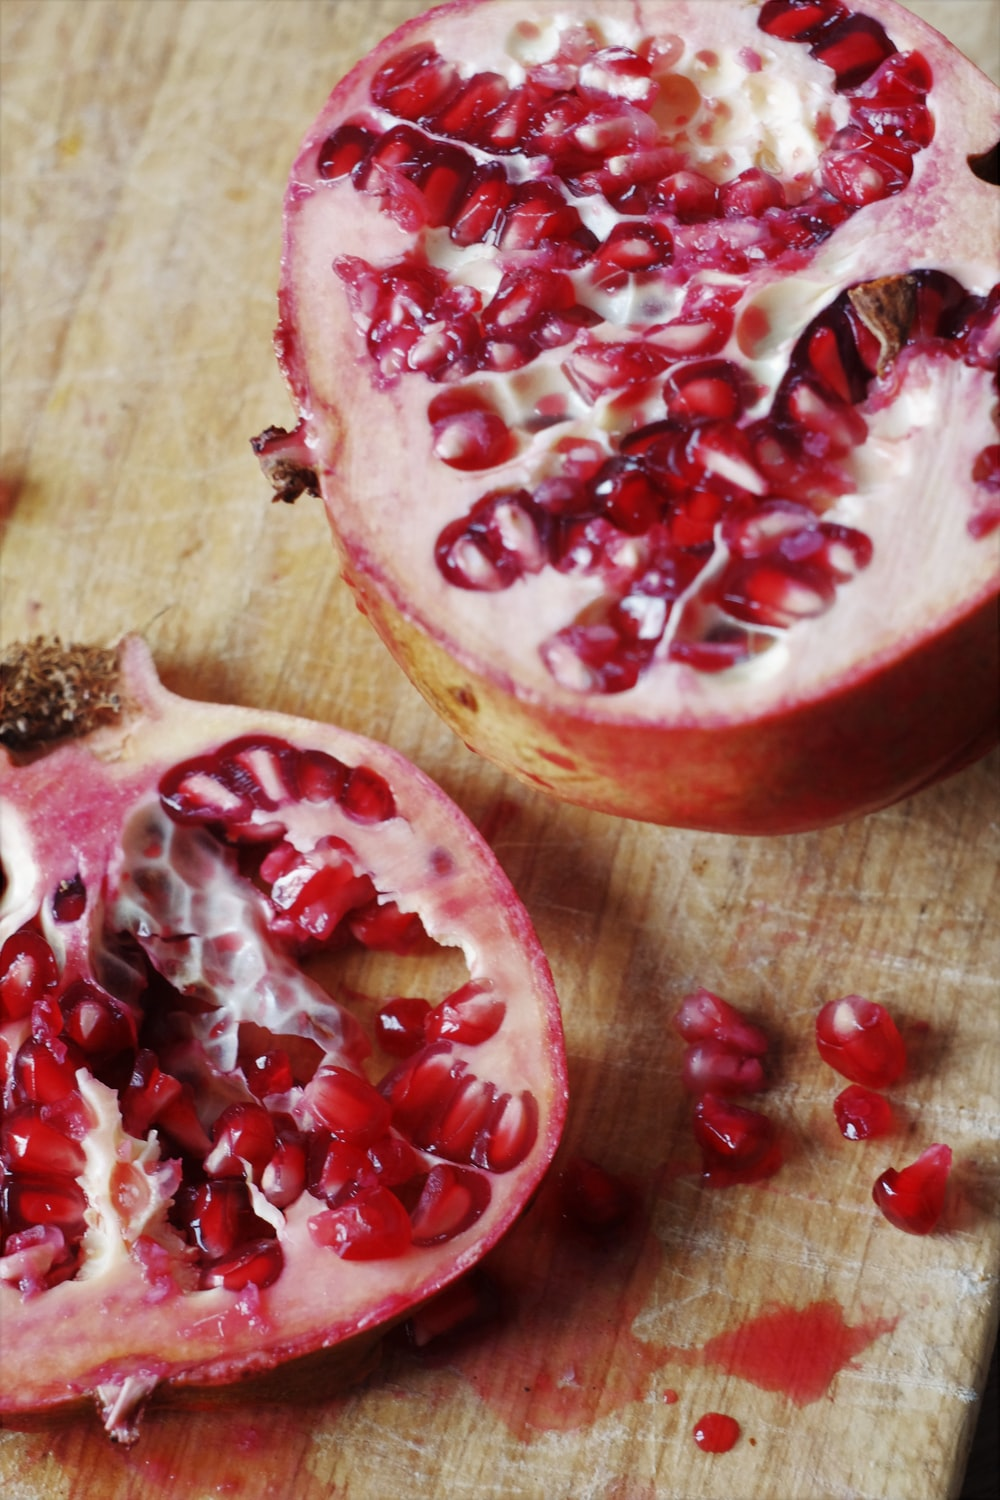 sliced pomegranate on brown wooden table